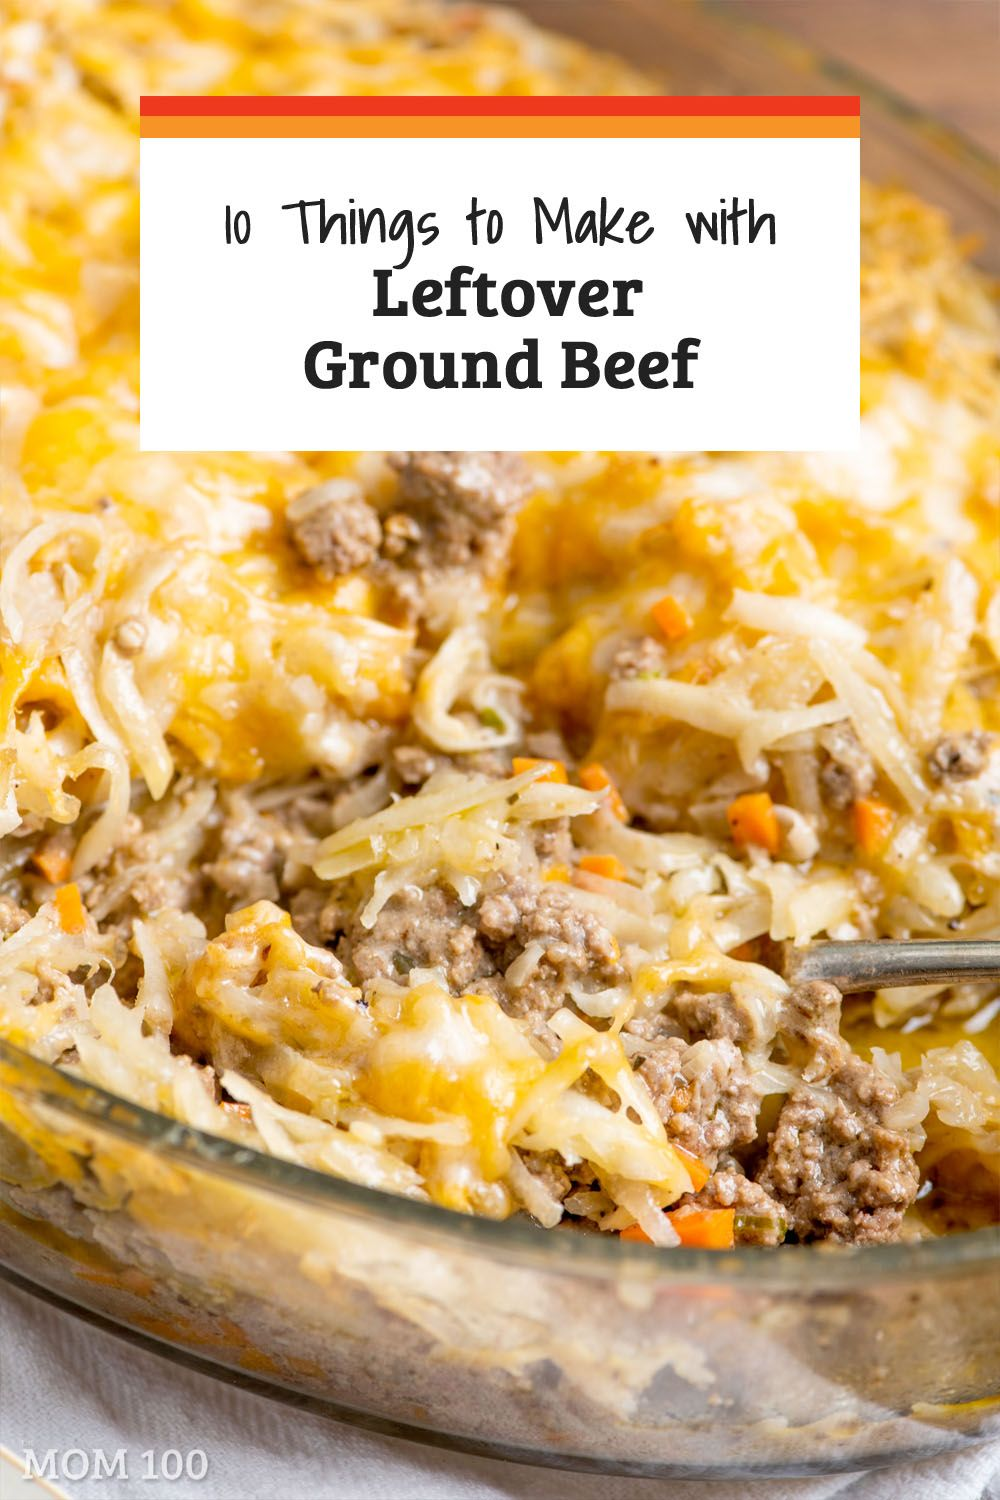 10 Ways For Putting Ever Popular Ground Beef To Work In Delicious Ways Dinner Ideas For Days Ground Beef Ground Beef Recipes For Dinner Eat Beef